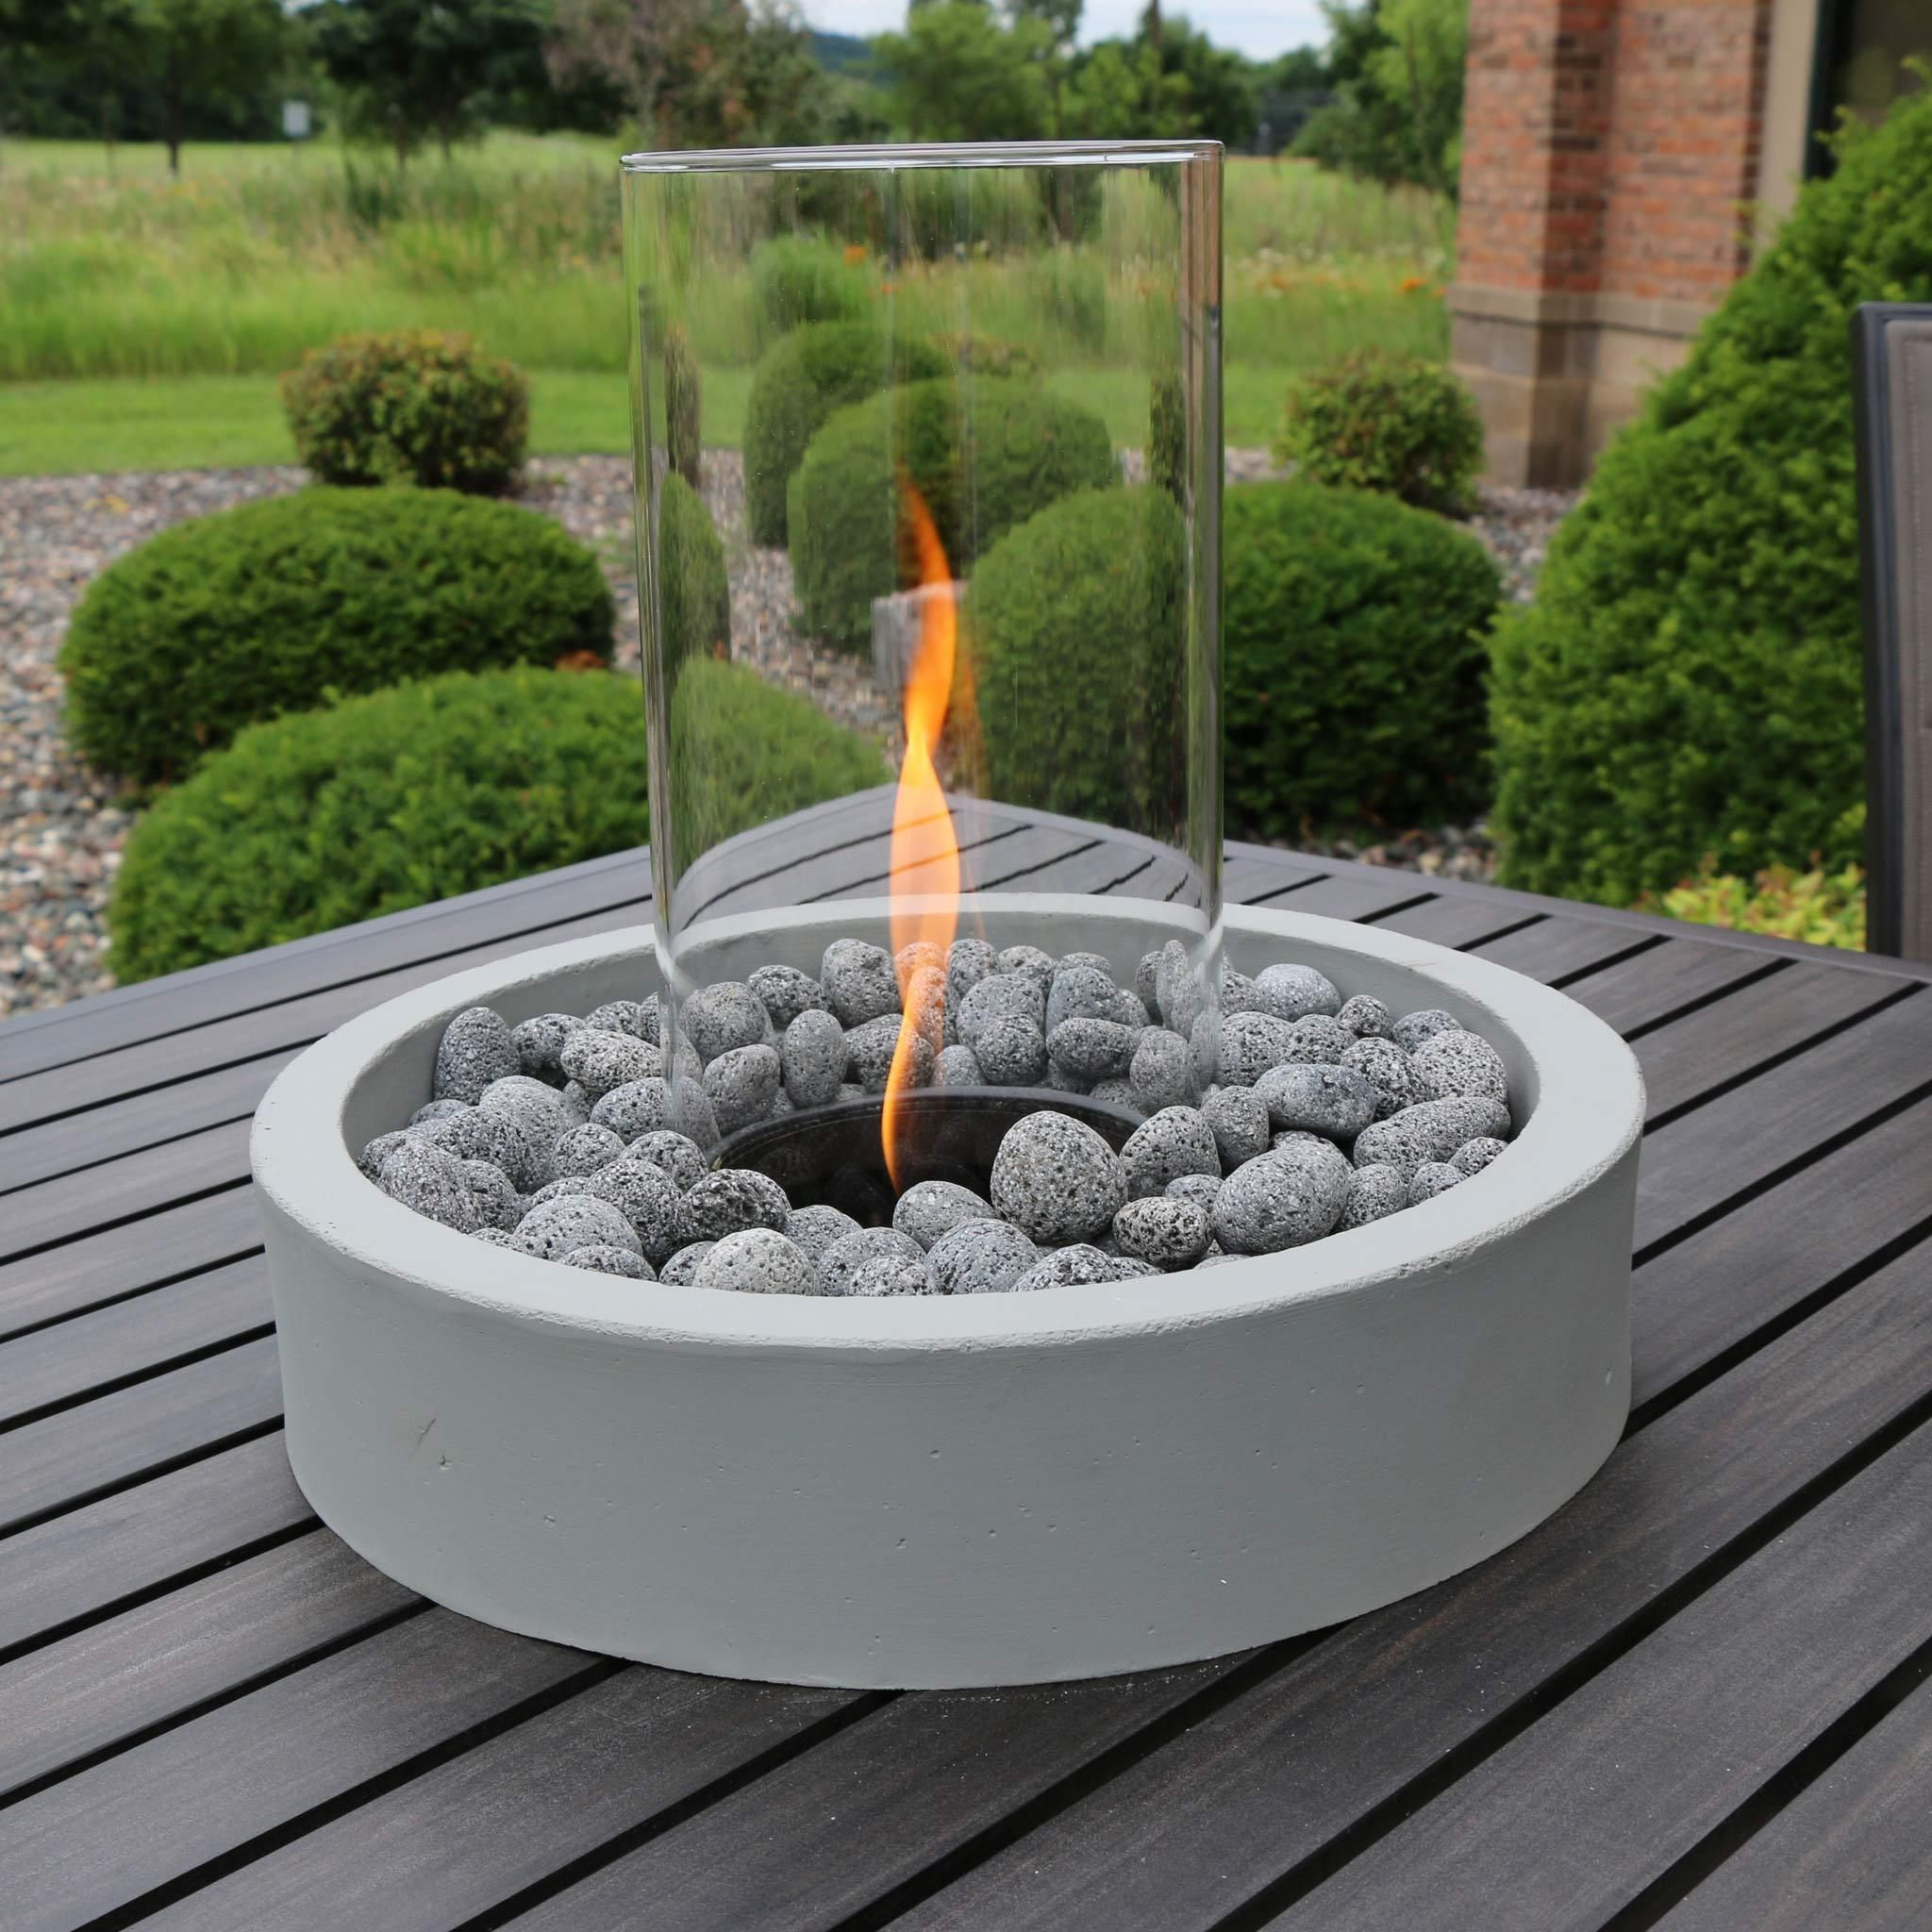 Tumbled Lava Rock 6 Lbs Outdoor Fire Pit Sets Gas Fire Pit Kit